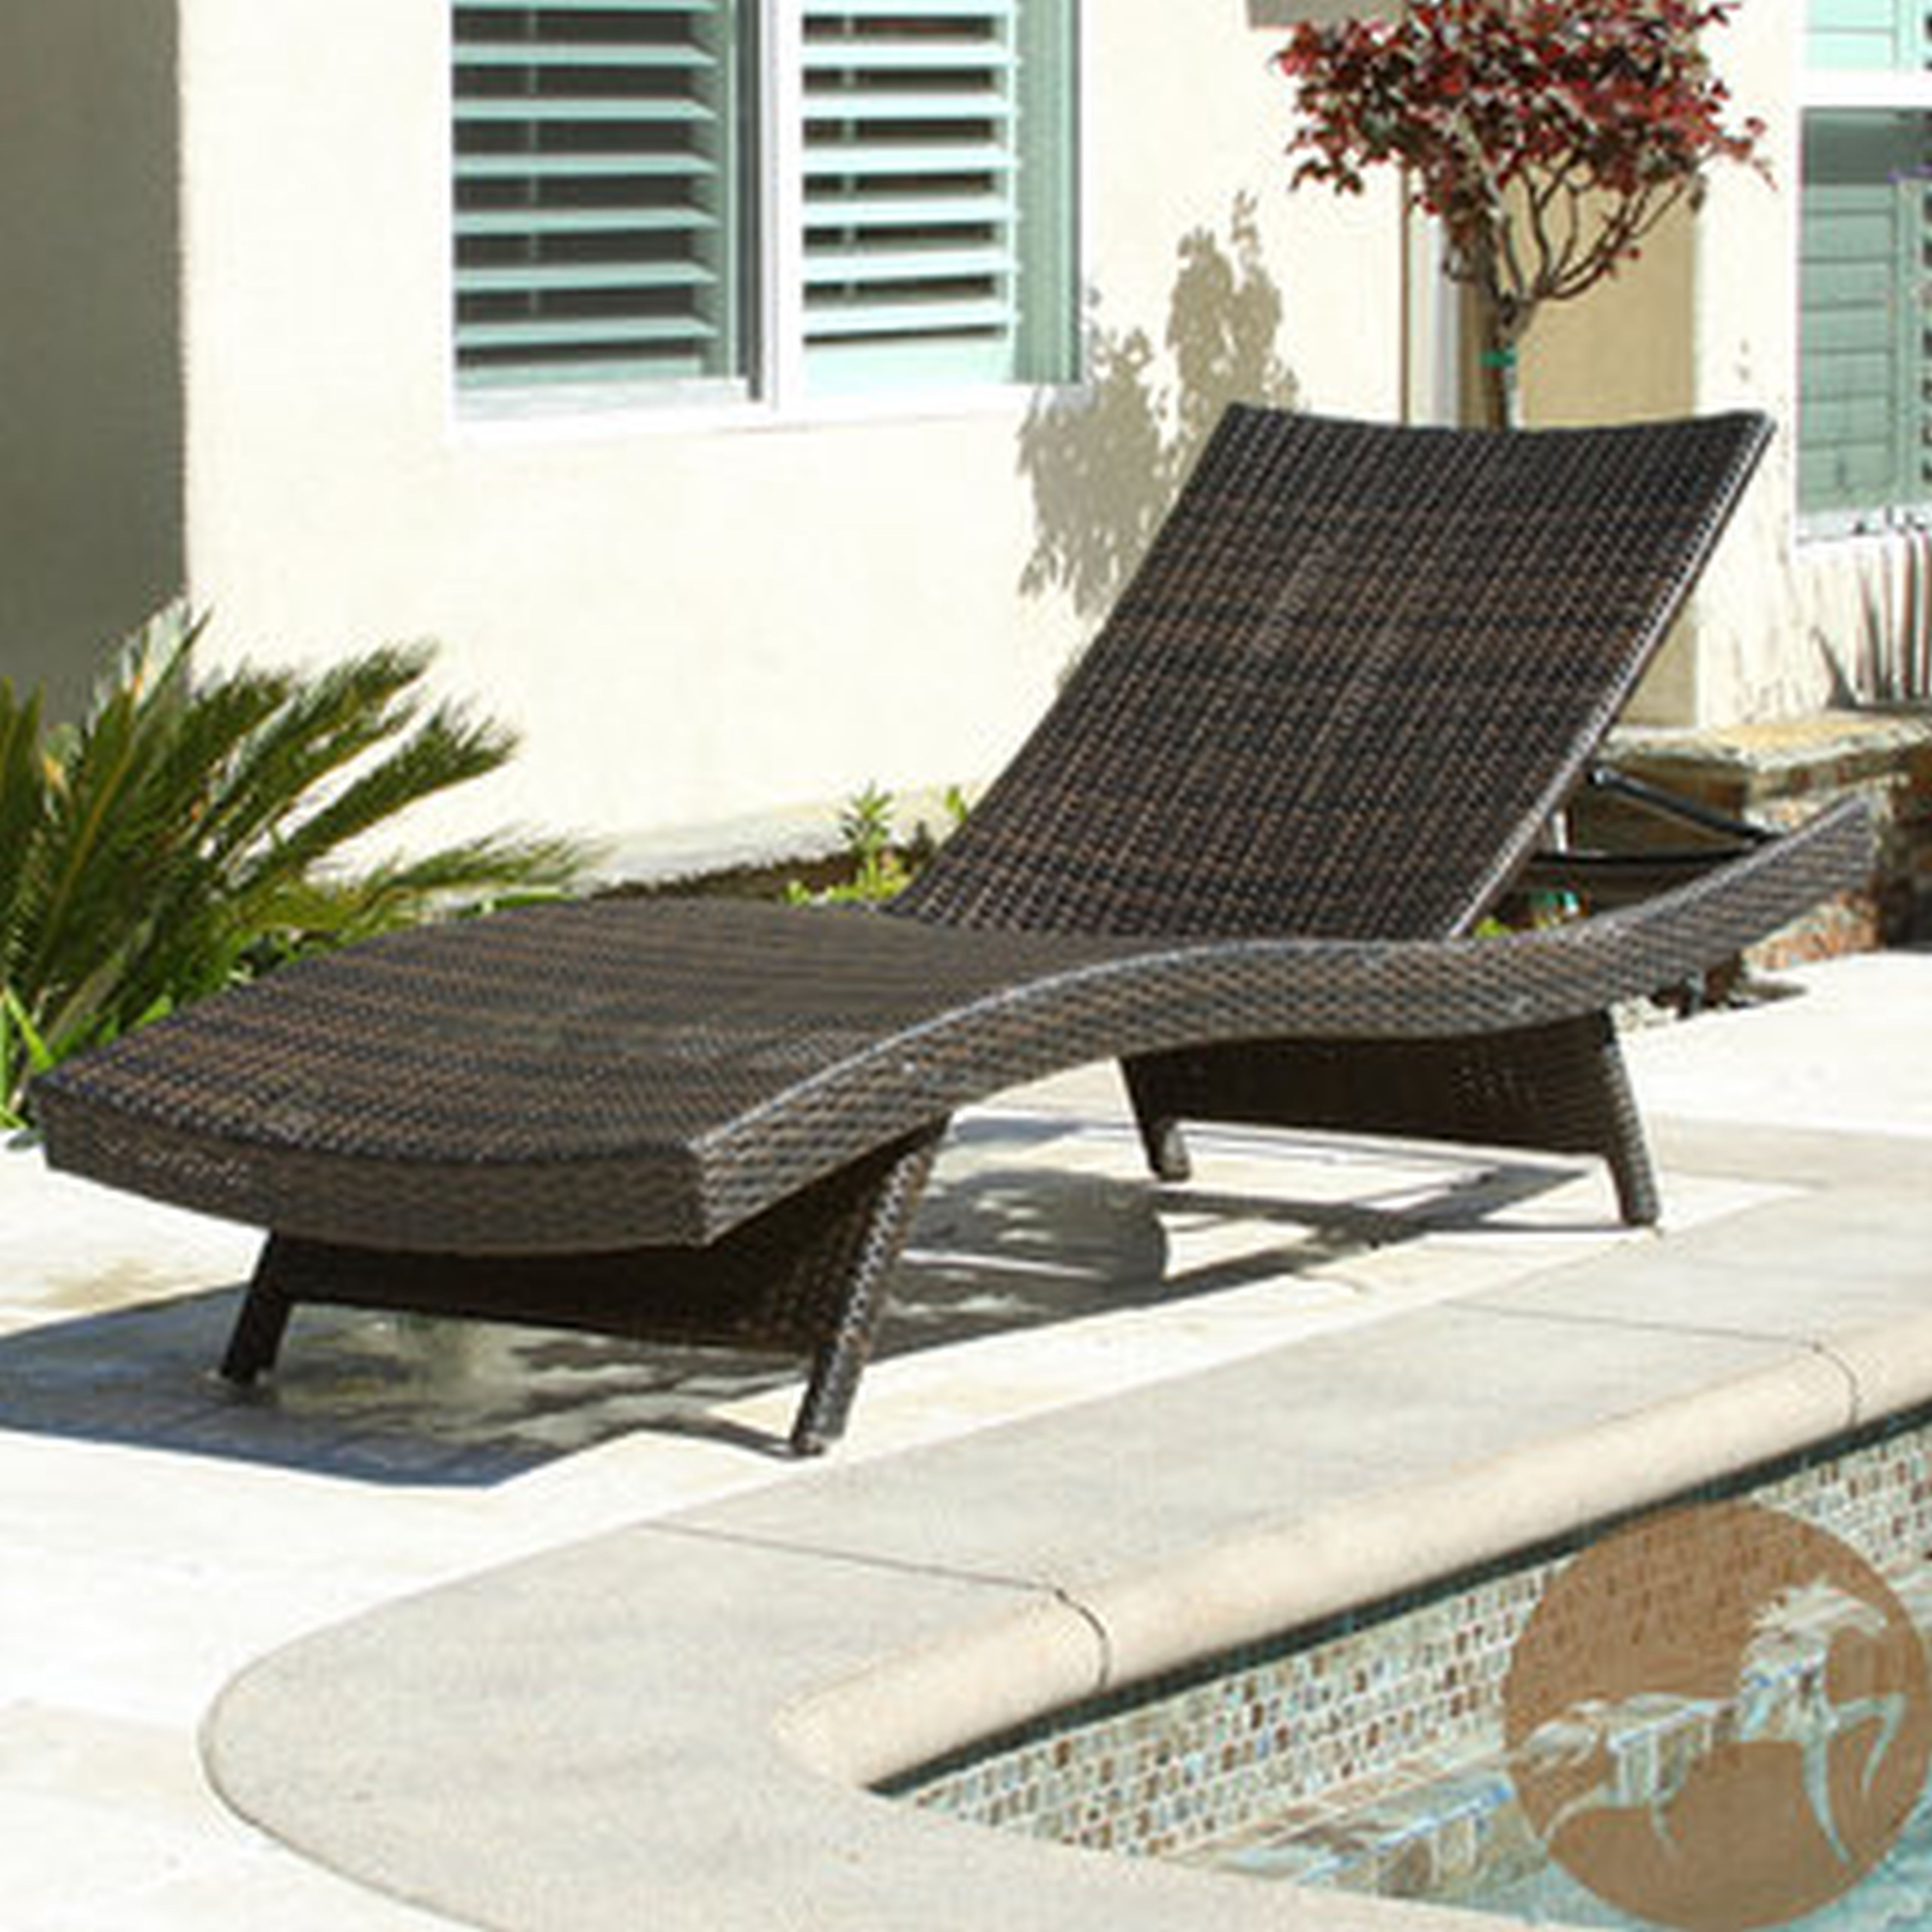 Newest Chaise Lounge Chairs For Outdoor In Convertible Chair : Cushions Rattan Chair Cushions High Back Patio (View 8 of 15)